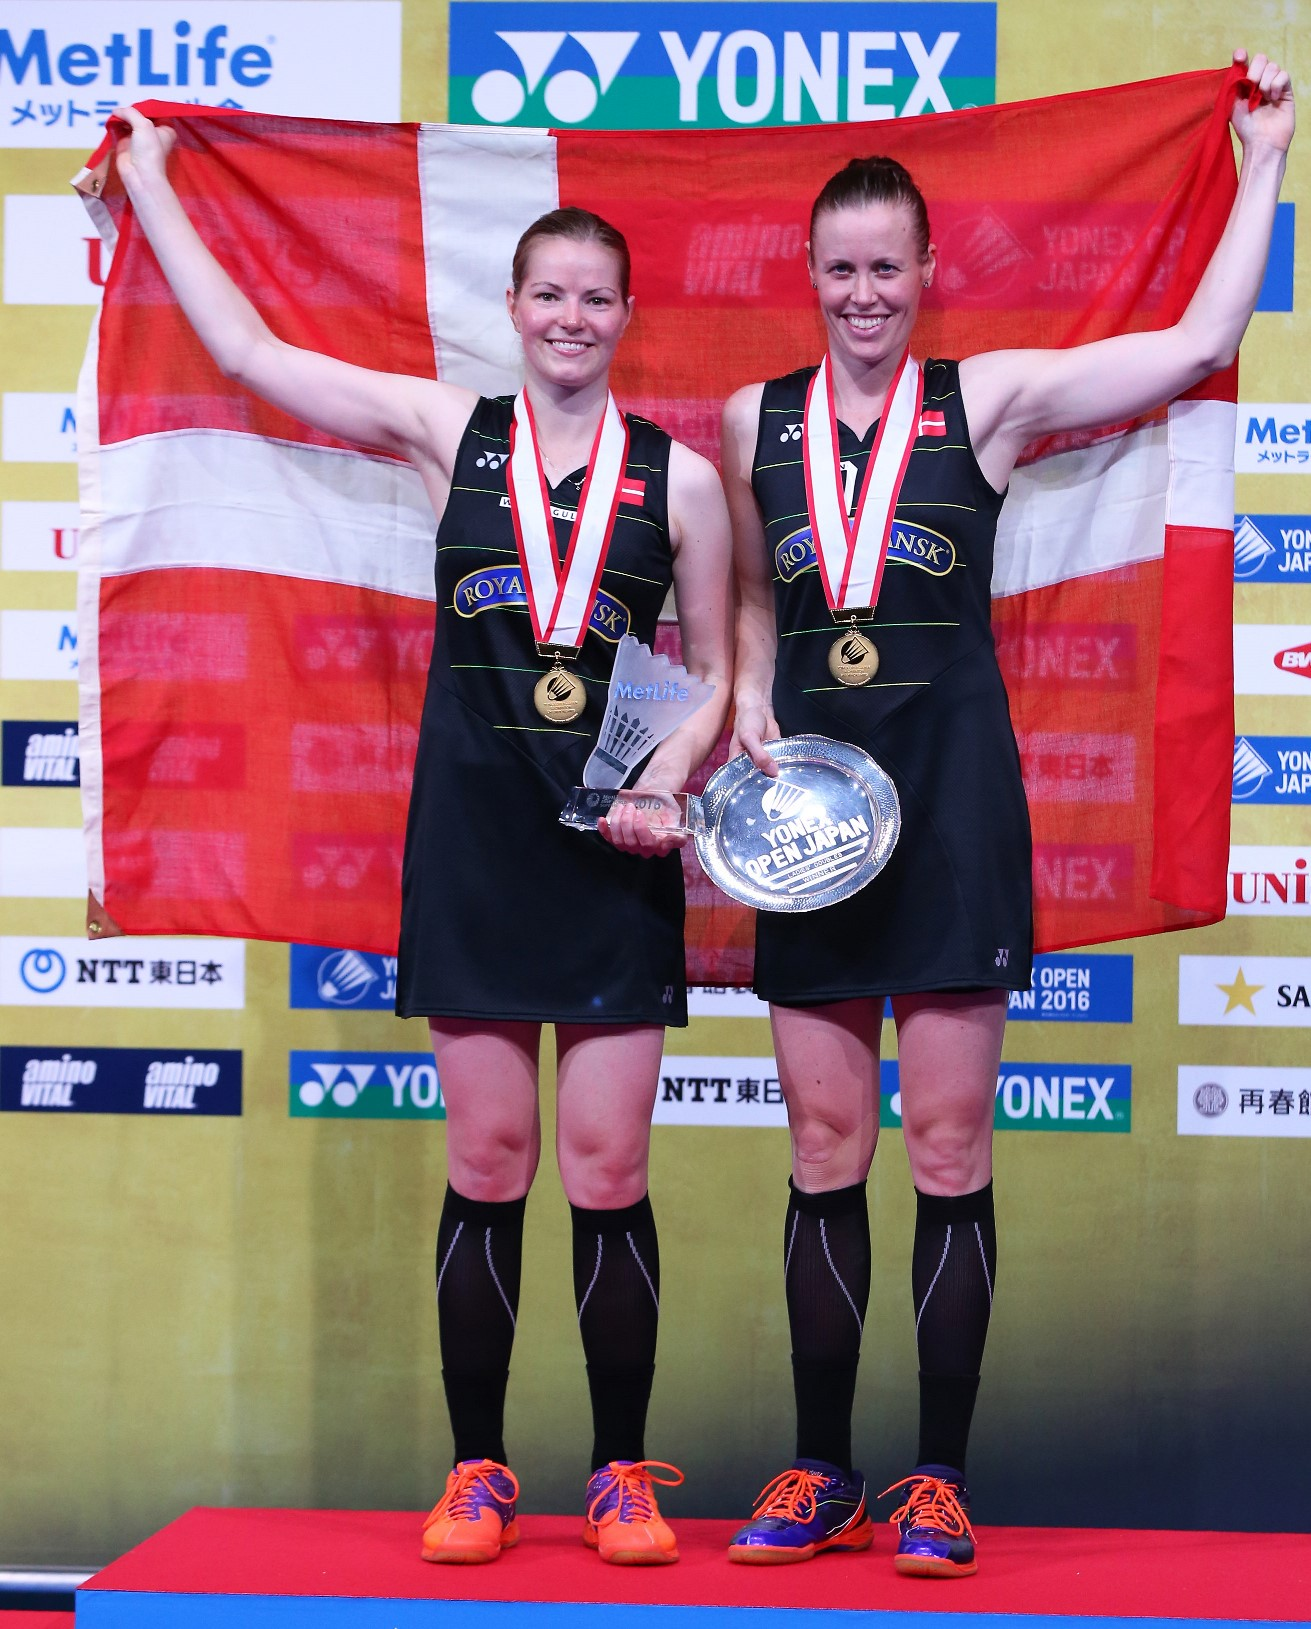 Kamilla Rytter Juhl (right) & Christinna Pedersen of Denmark